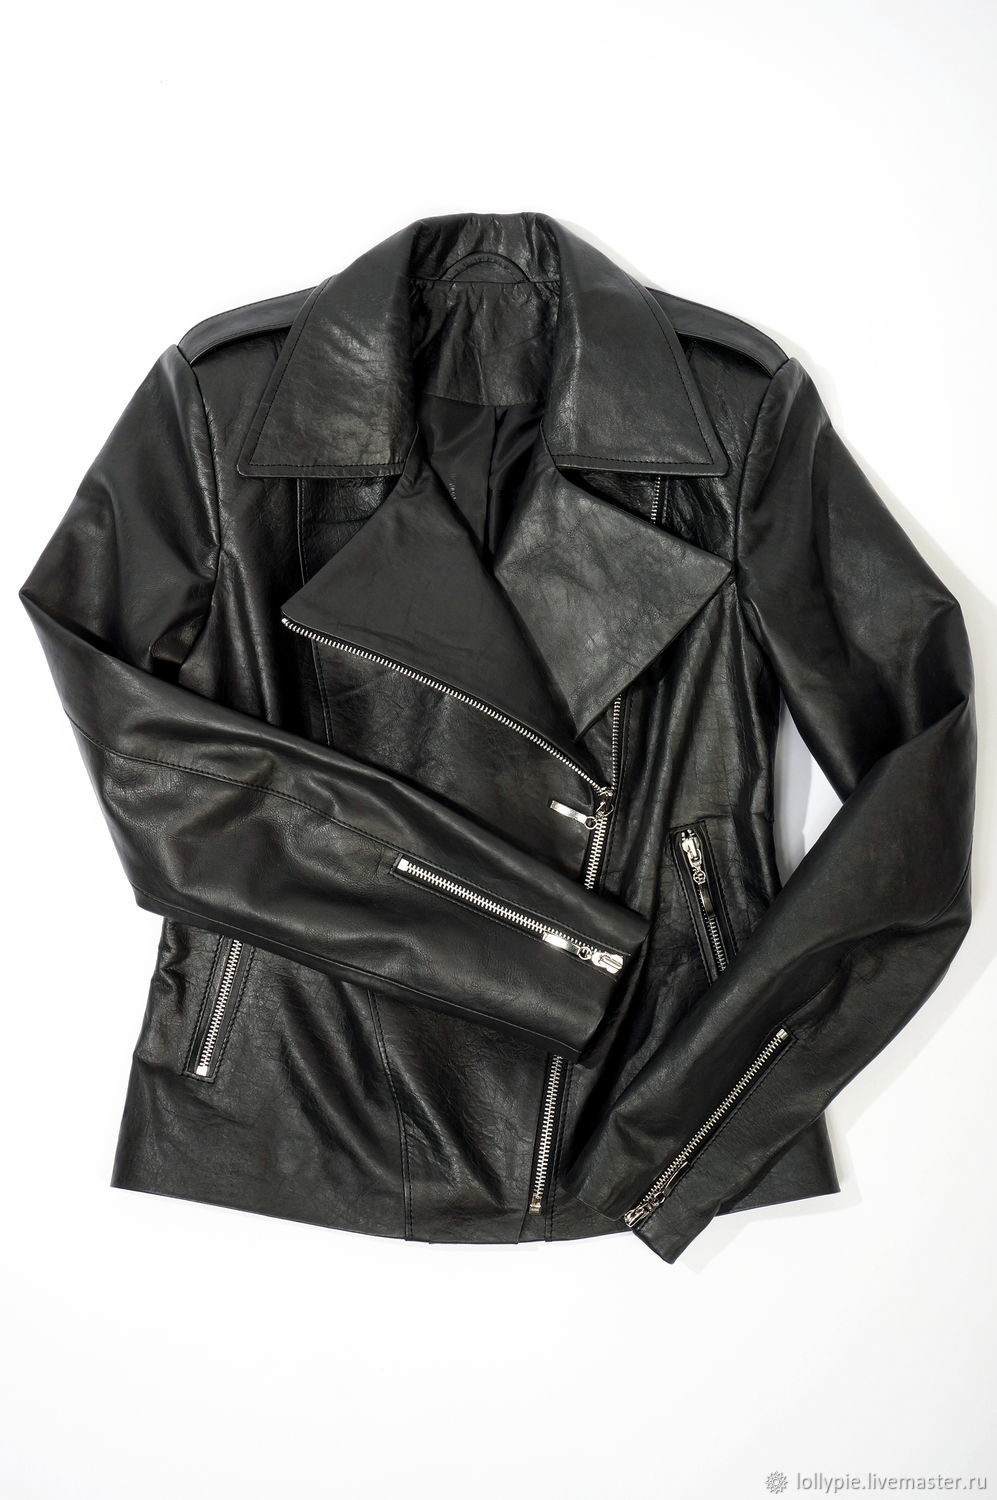 Women's leather jacket with wings black, Outerwear Jackets, Moscow,  Фото №1